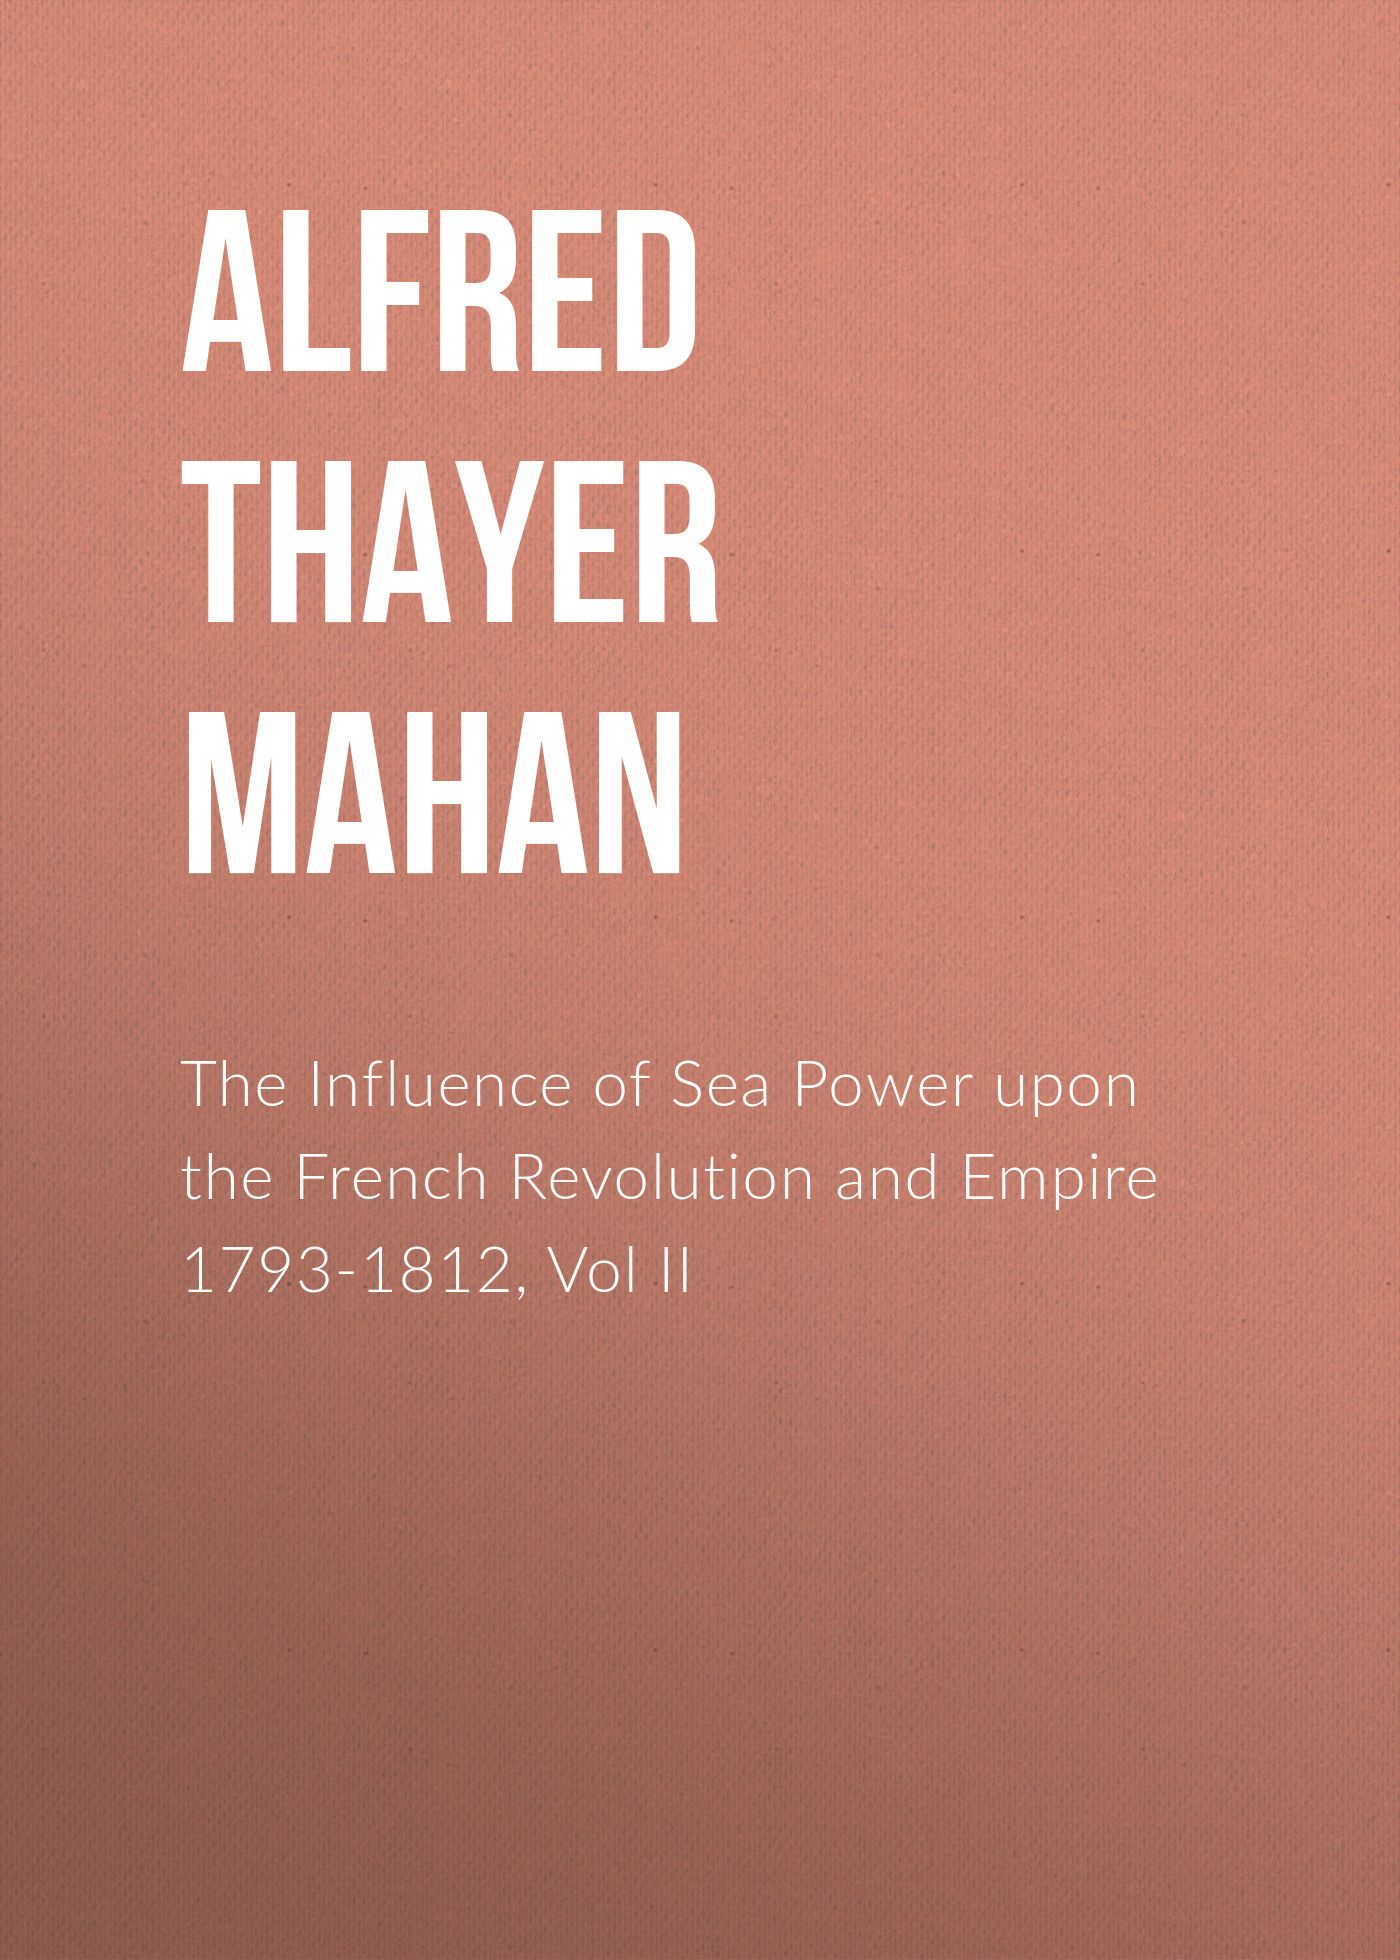 Alfred Thayer Mahan The Influence of Sea Power upon the French Revolution and Empire 1793-1812, Vol II retro vintage black rust wrought iron cage chandeliers e14 big french empire style crystal chandelier led lamp hardware lighting